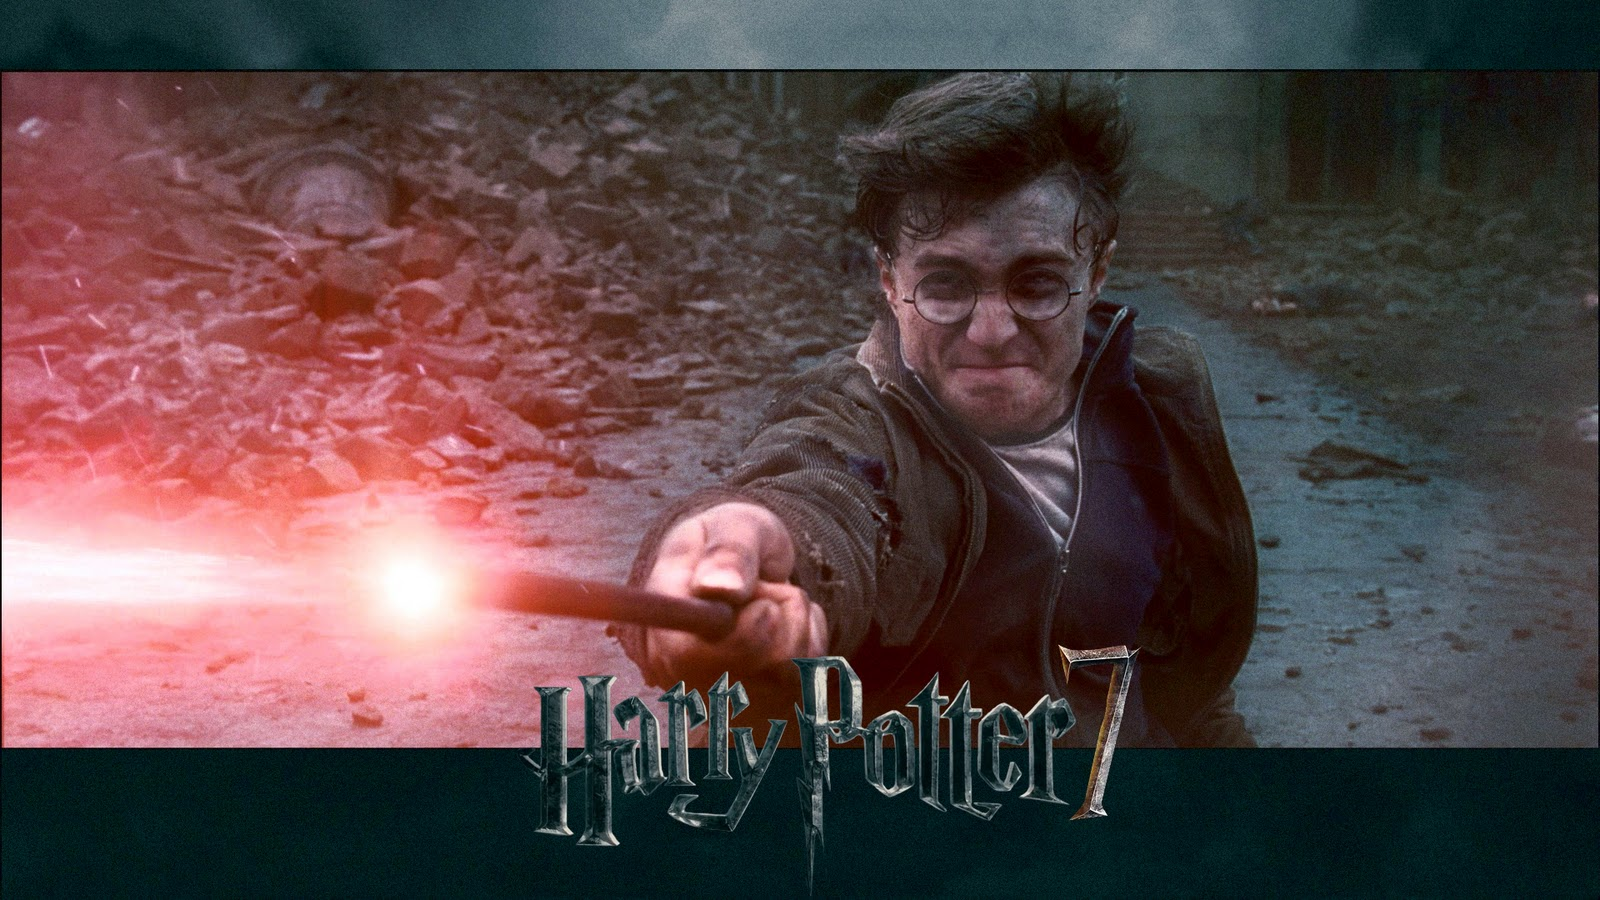 harry potter deathly hallows part ii wallpapers - Harry Potter and the Deathly Hallows Part 2 HD Wallpapers